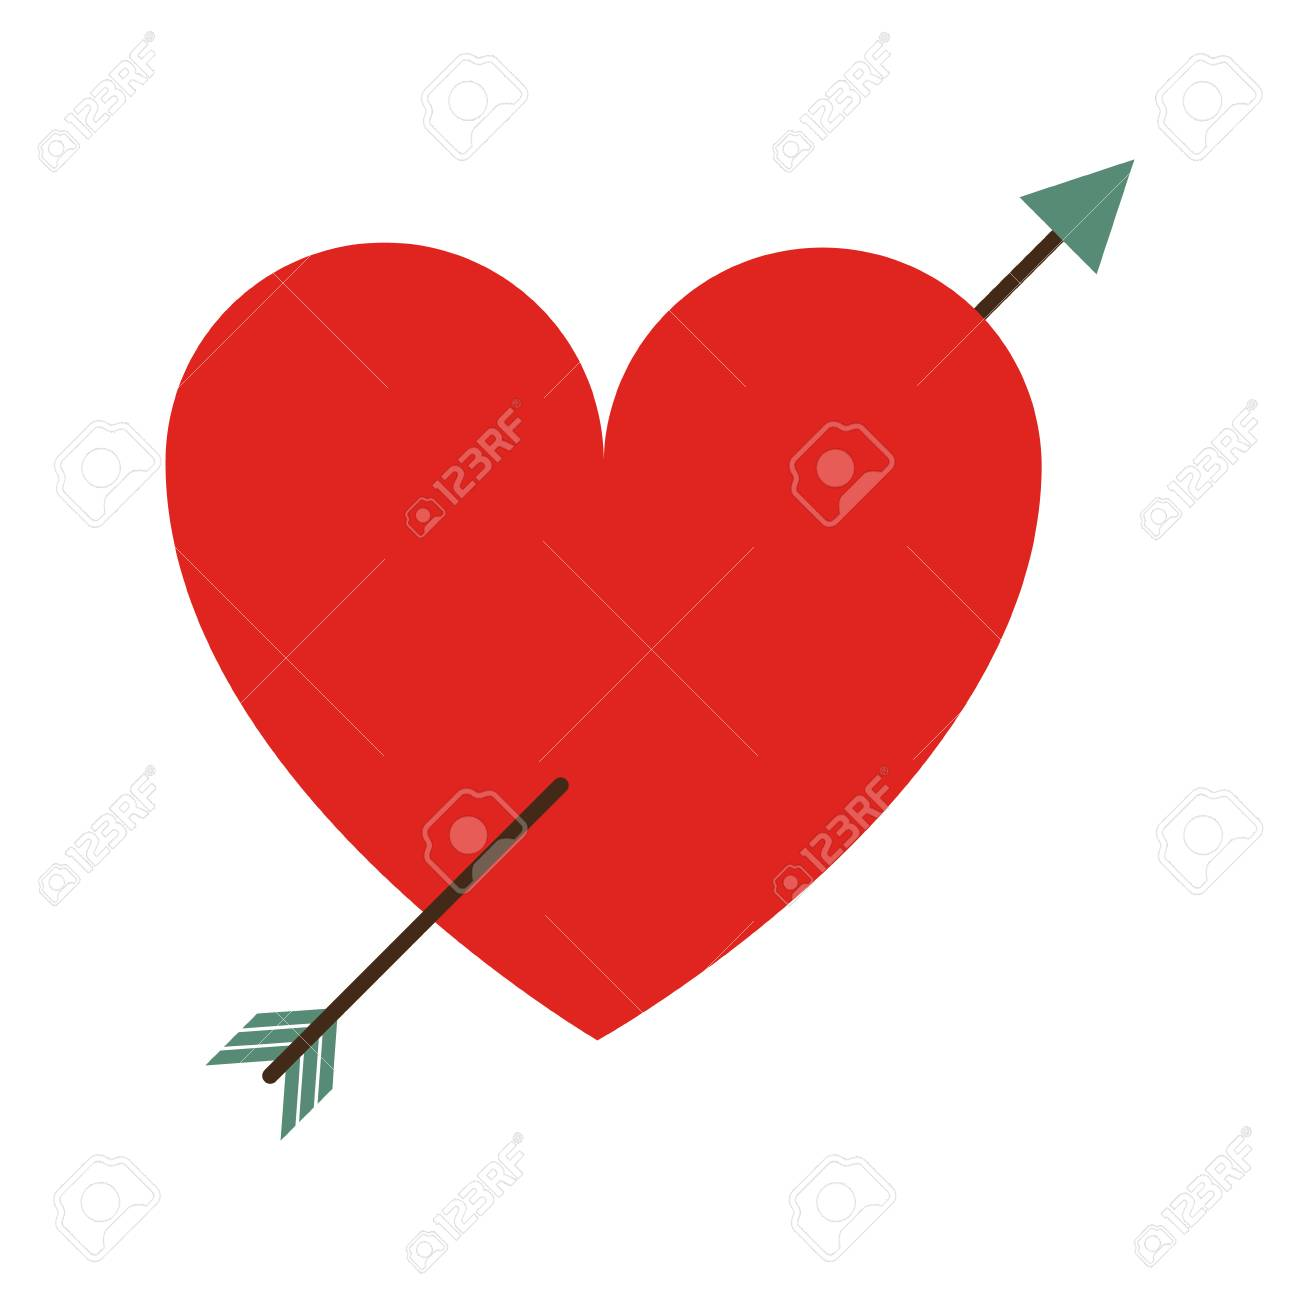 Cartoon Heart With Arrow Love Valentines Day Related Icon Icon